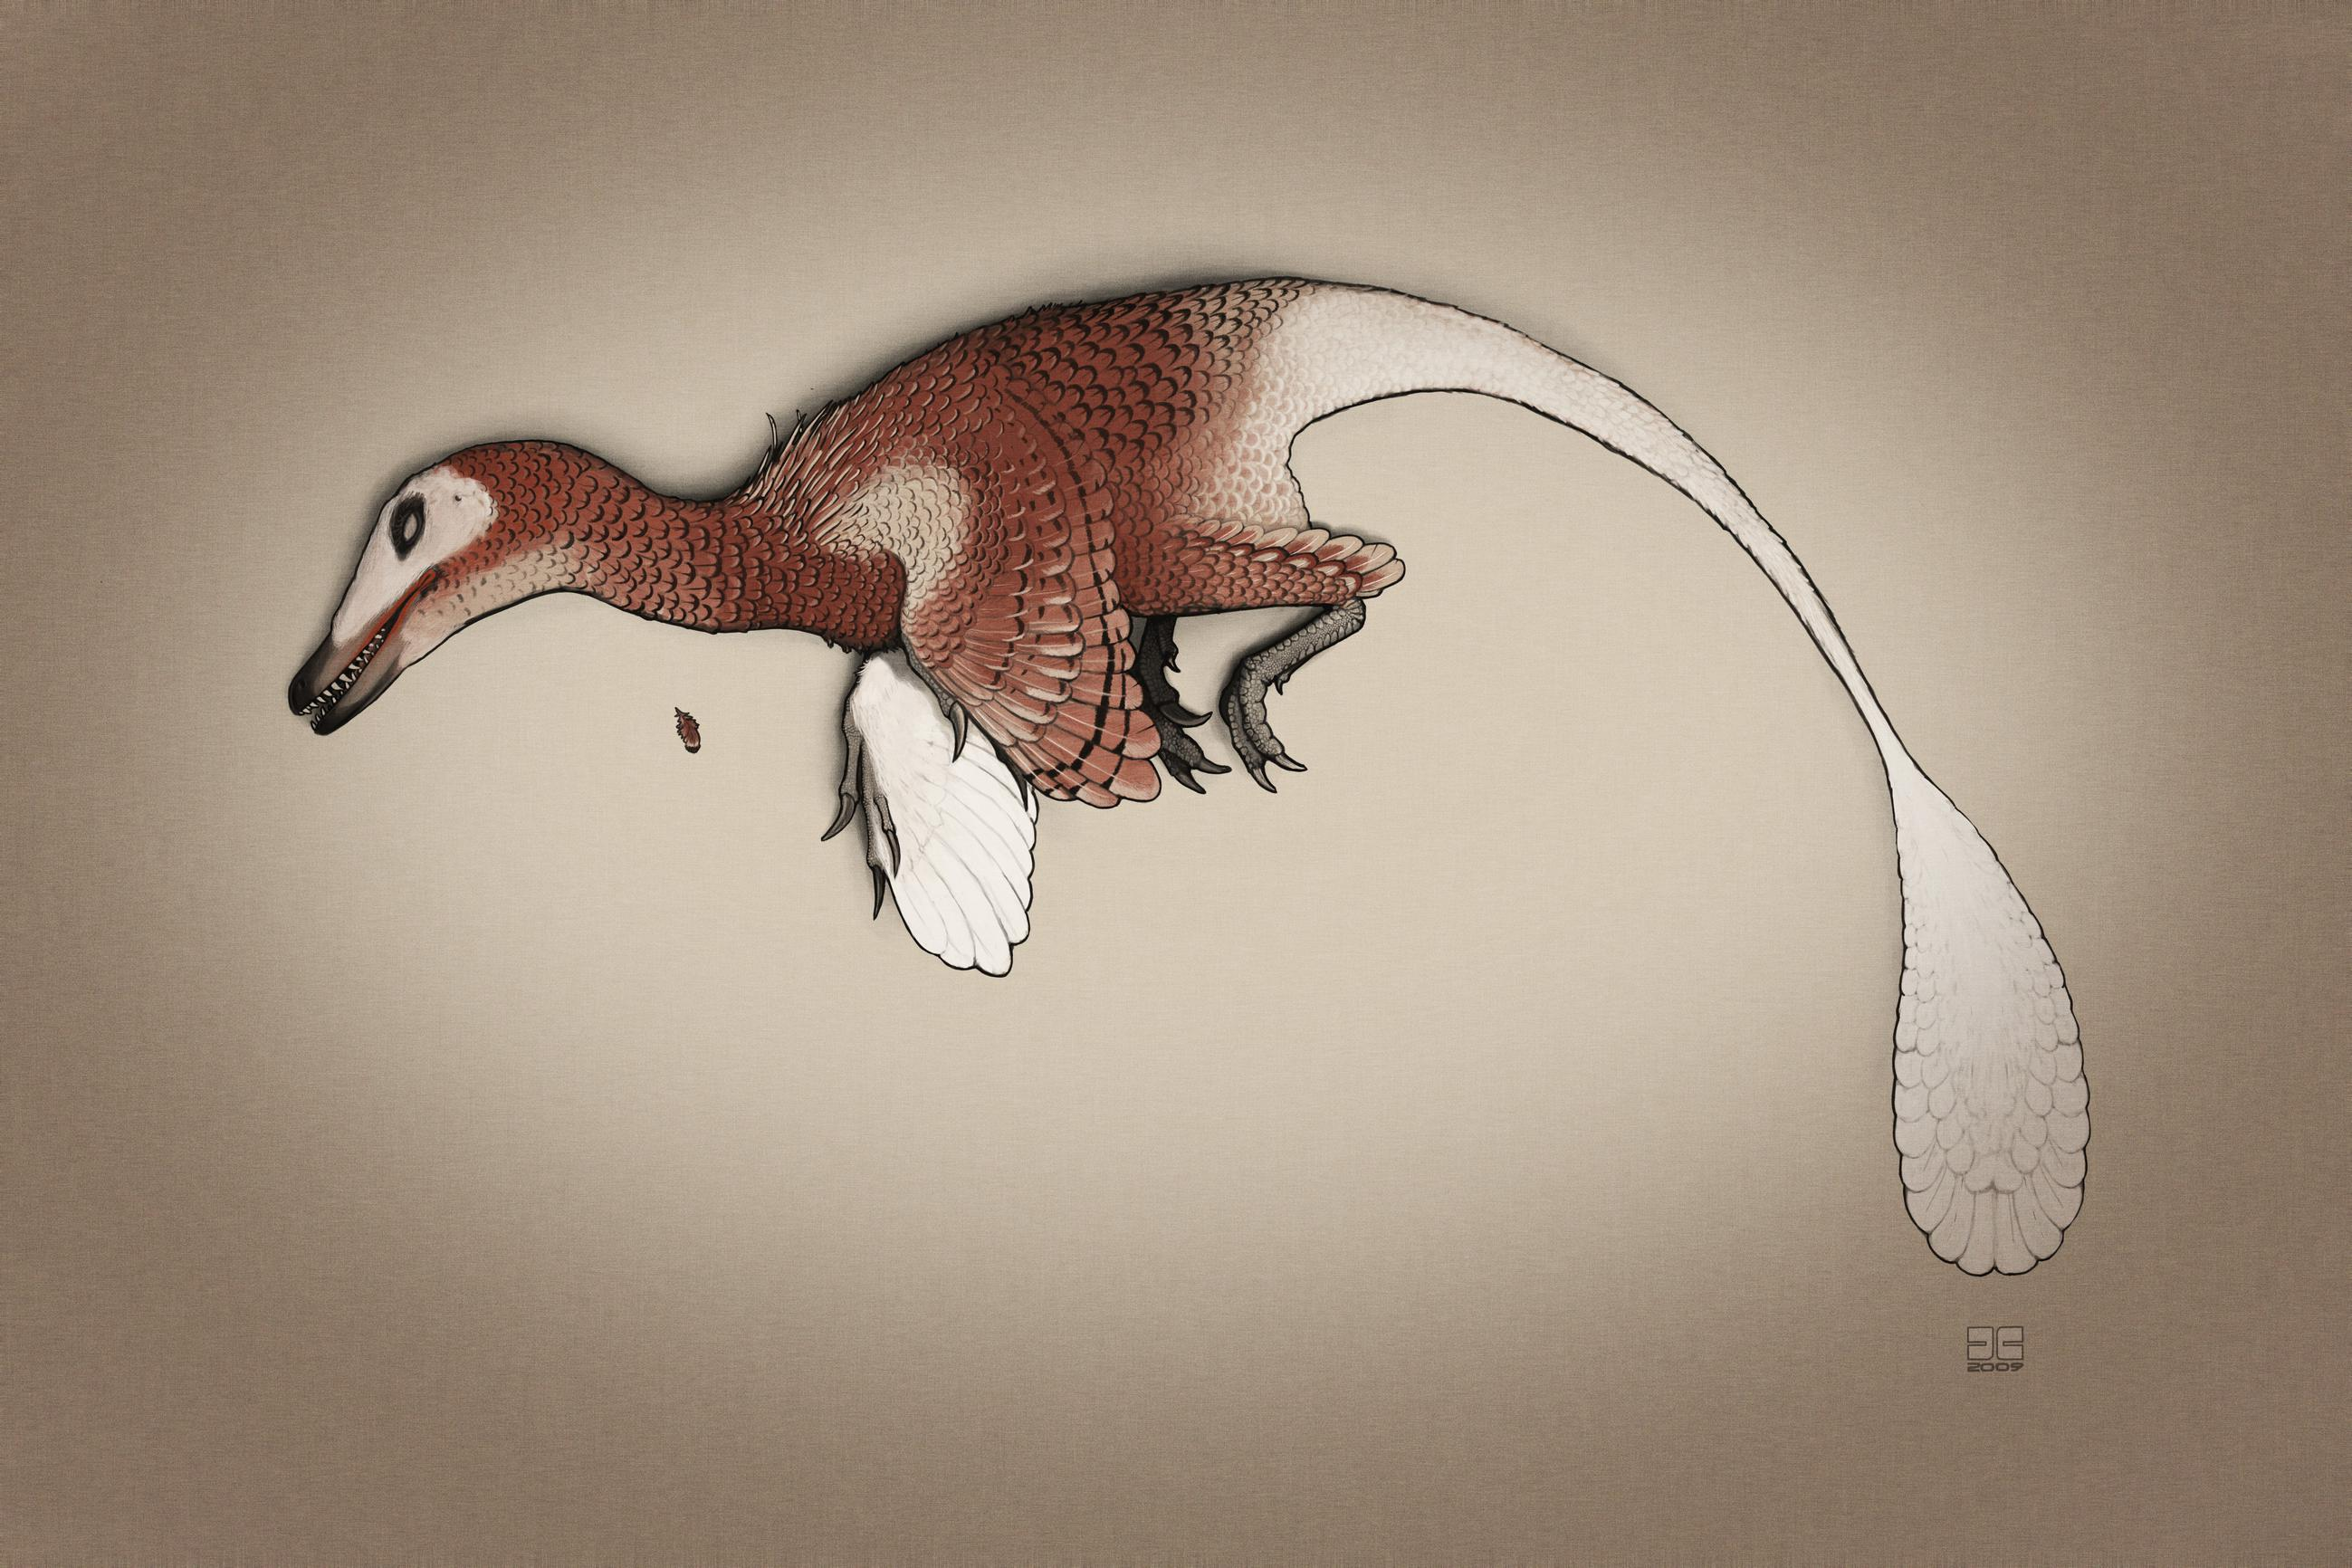 palaeo, painting, paleo, dinosaurs, mesozoic, mongolia, cretaceous, theropods, raptors, feathered dinosaurs, dead